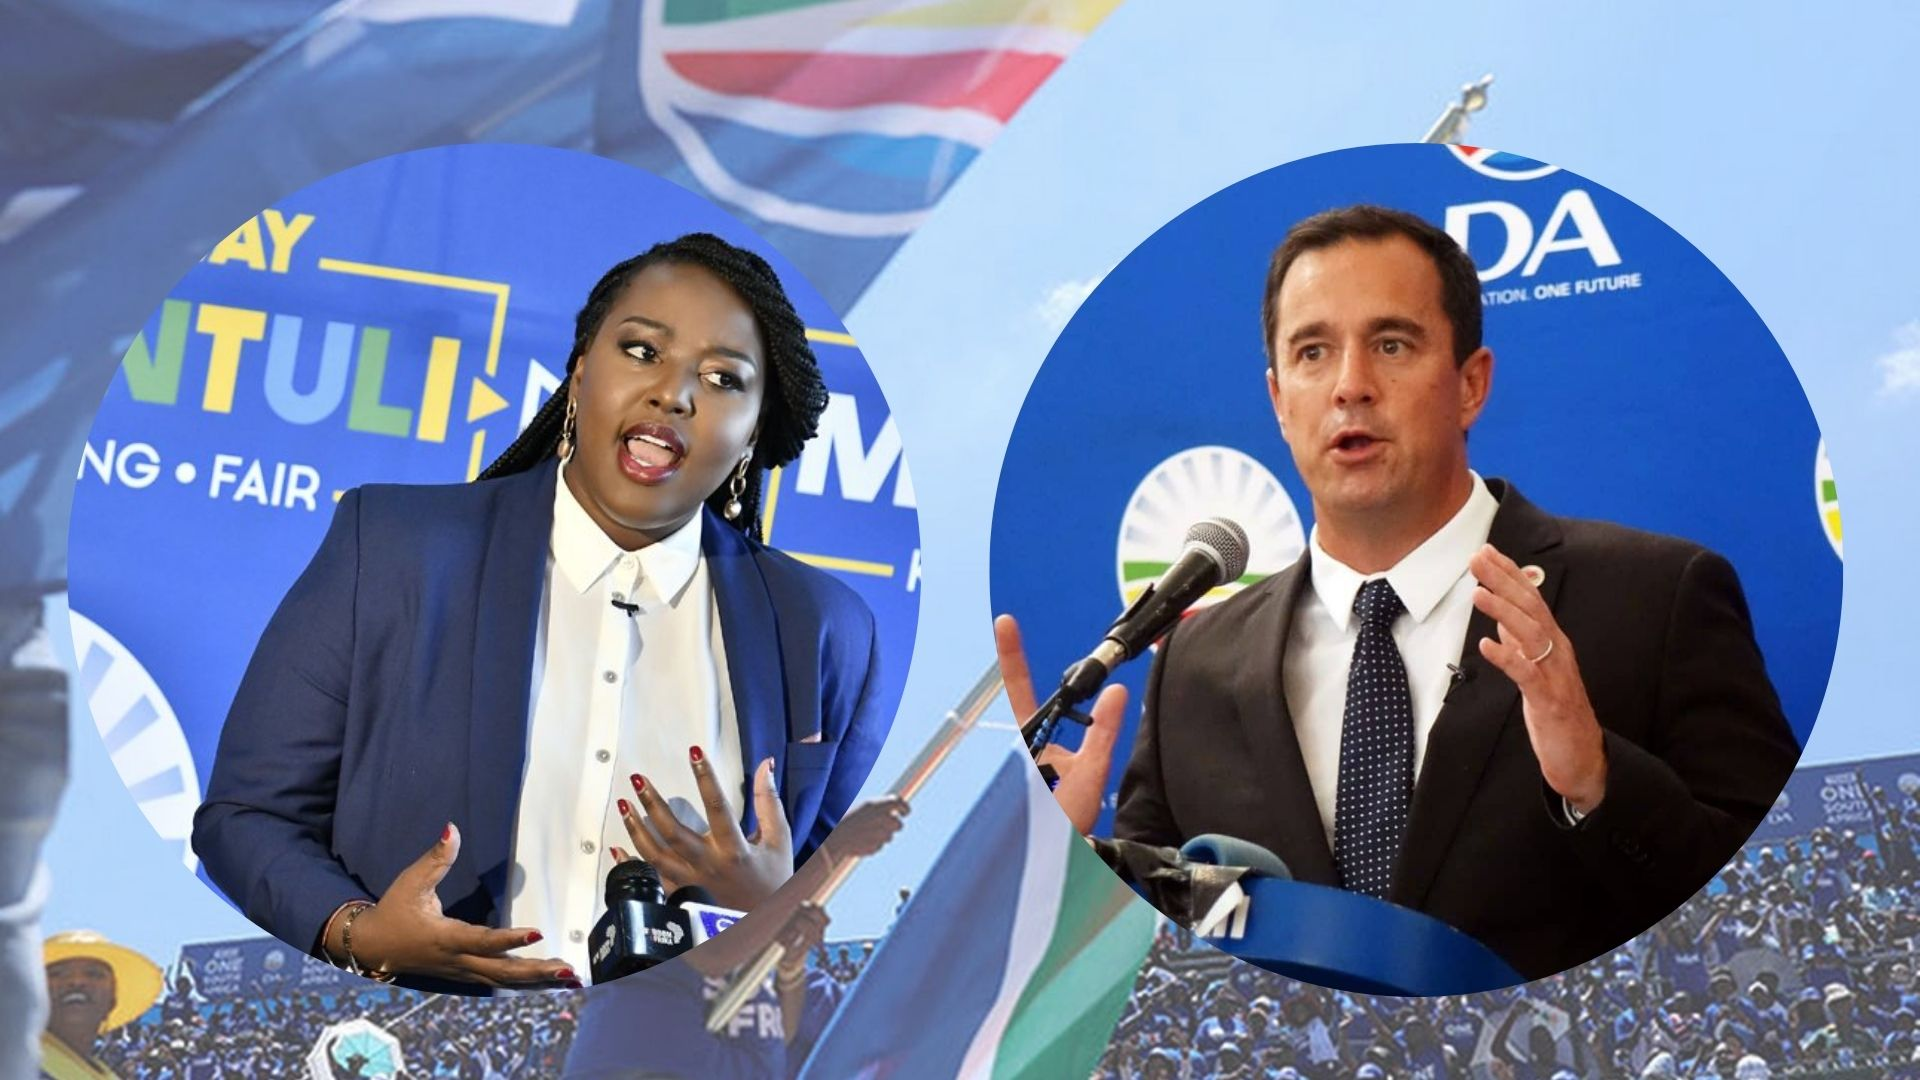 Leadership race between Ntuli and Steenhuisen accentuates DA's race (and ideological) dilemma